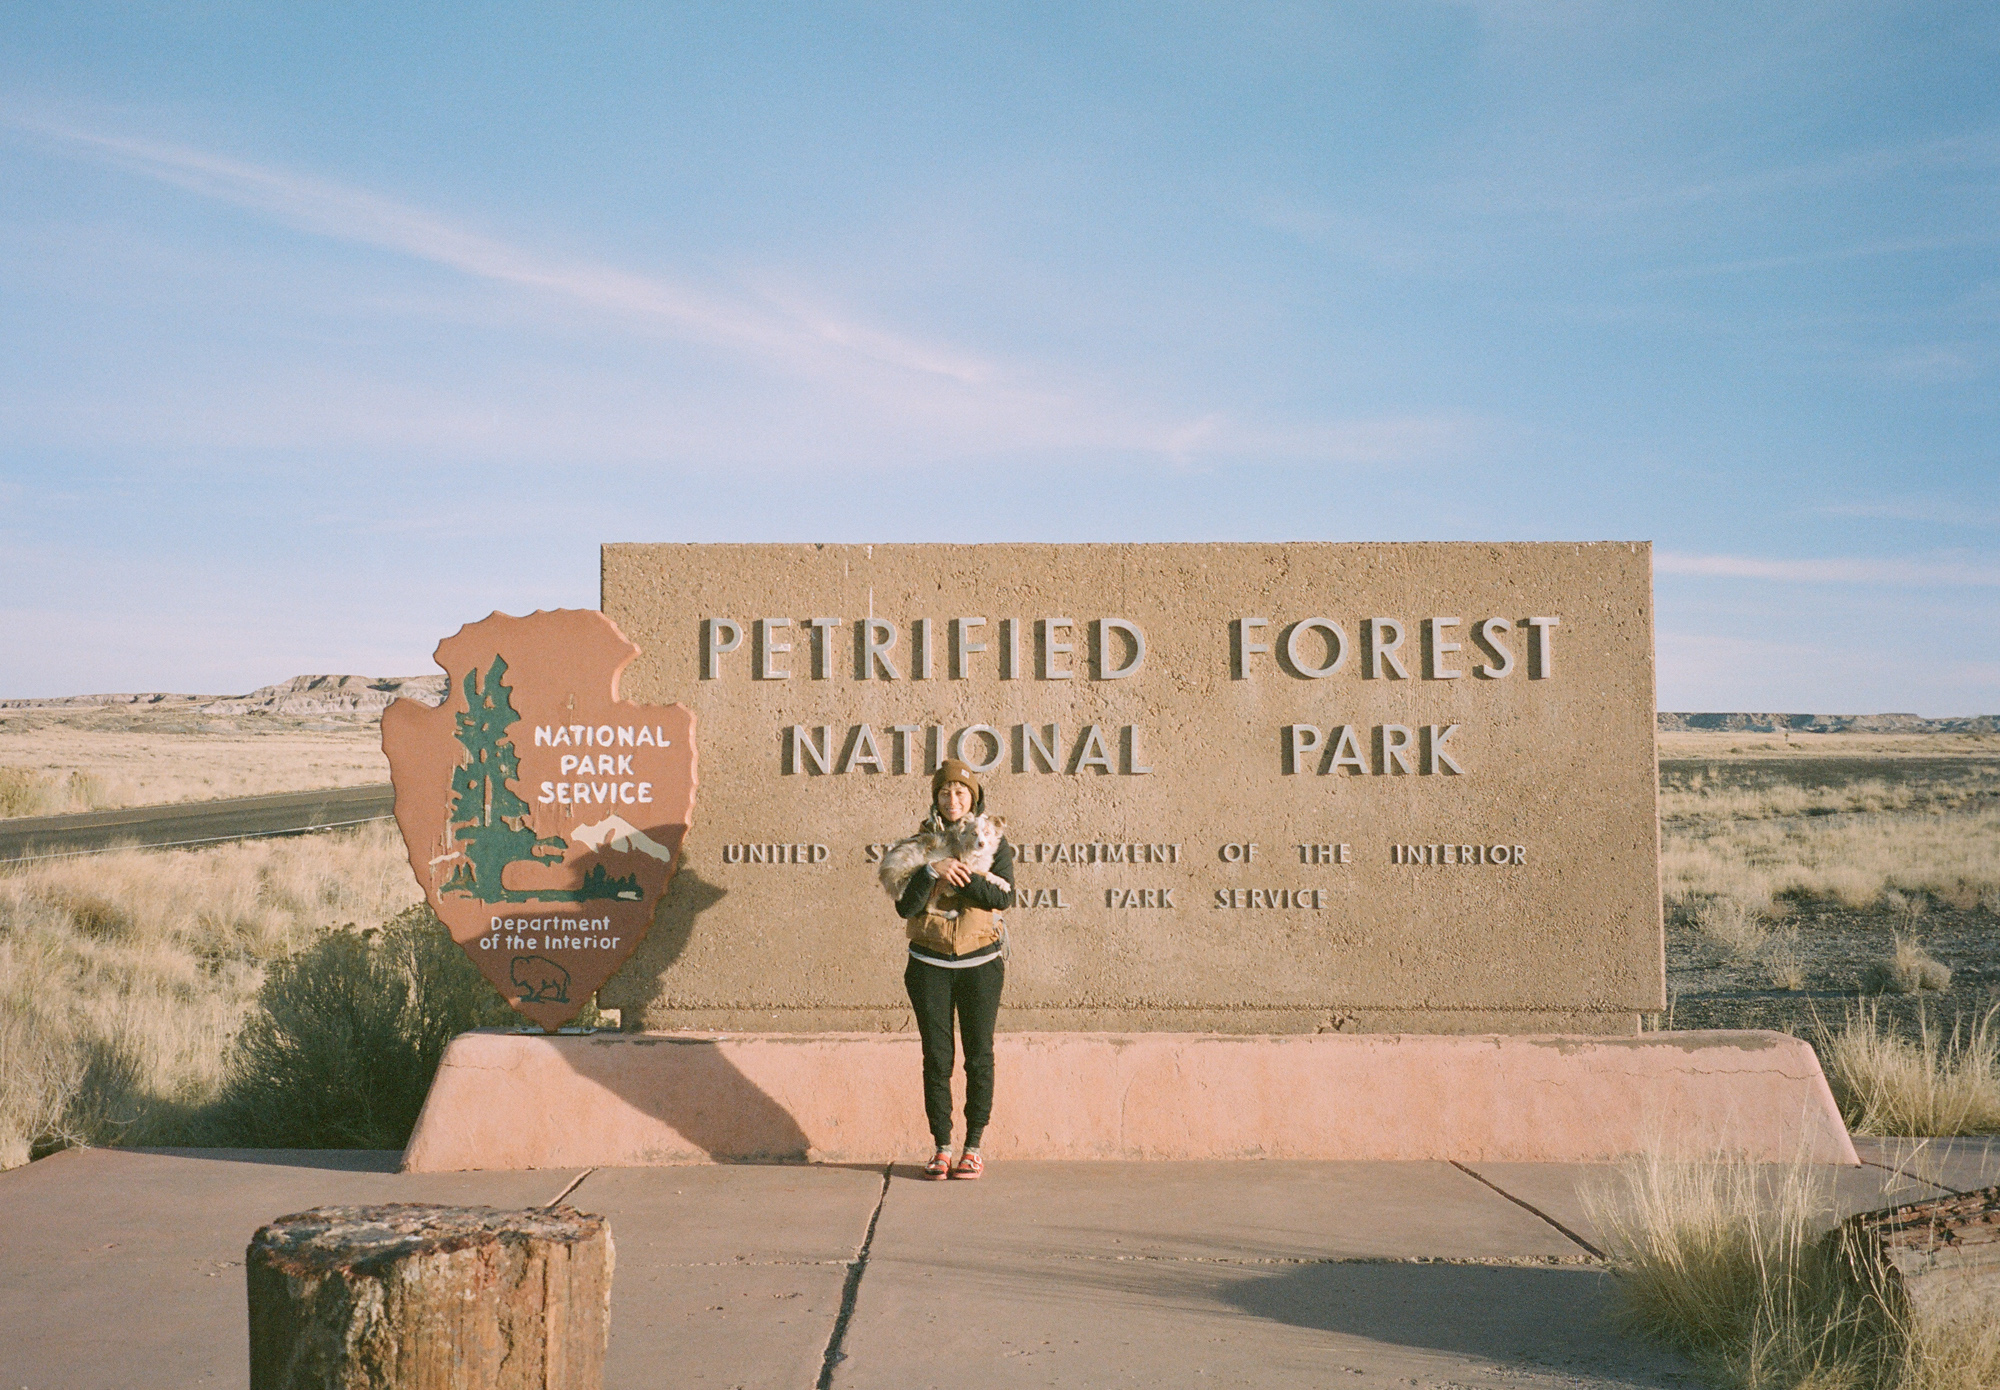 Petrified Forest NP is home to logs that are millions of years old and have been turned into stone, many cool geological formations, and the Painted Desert.